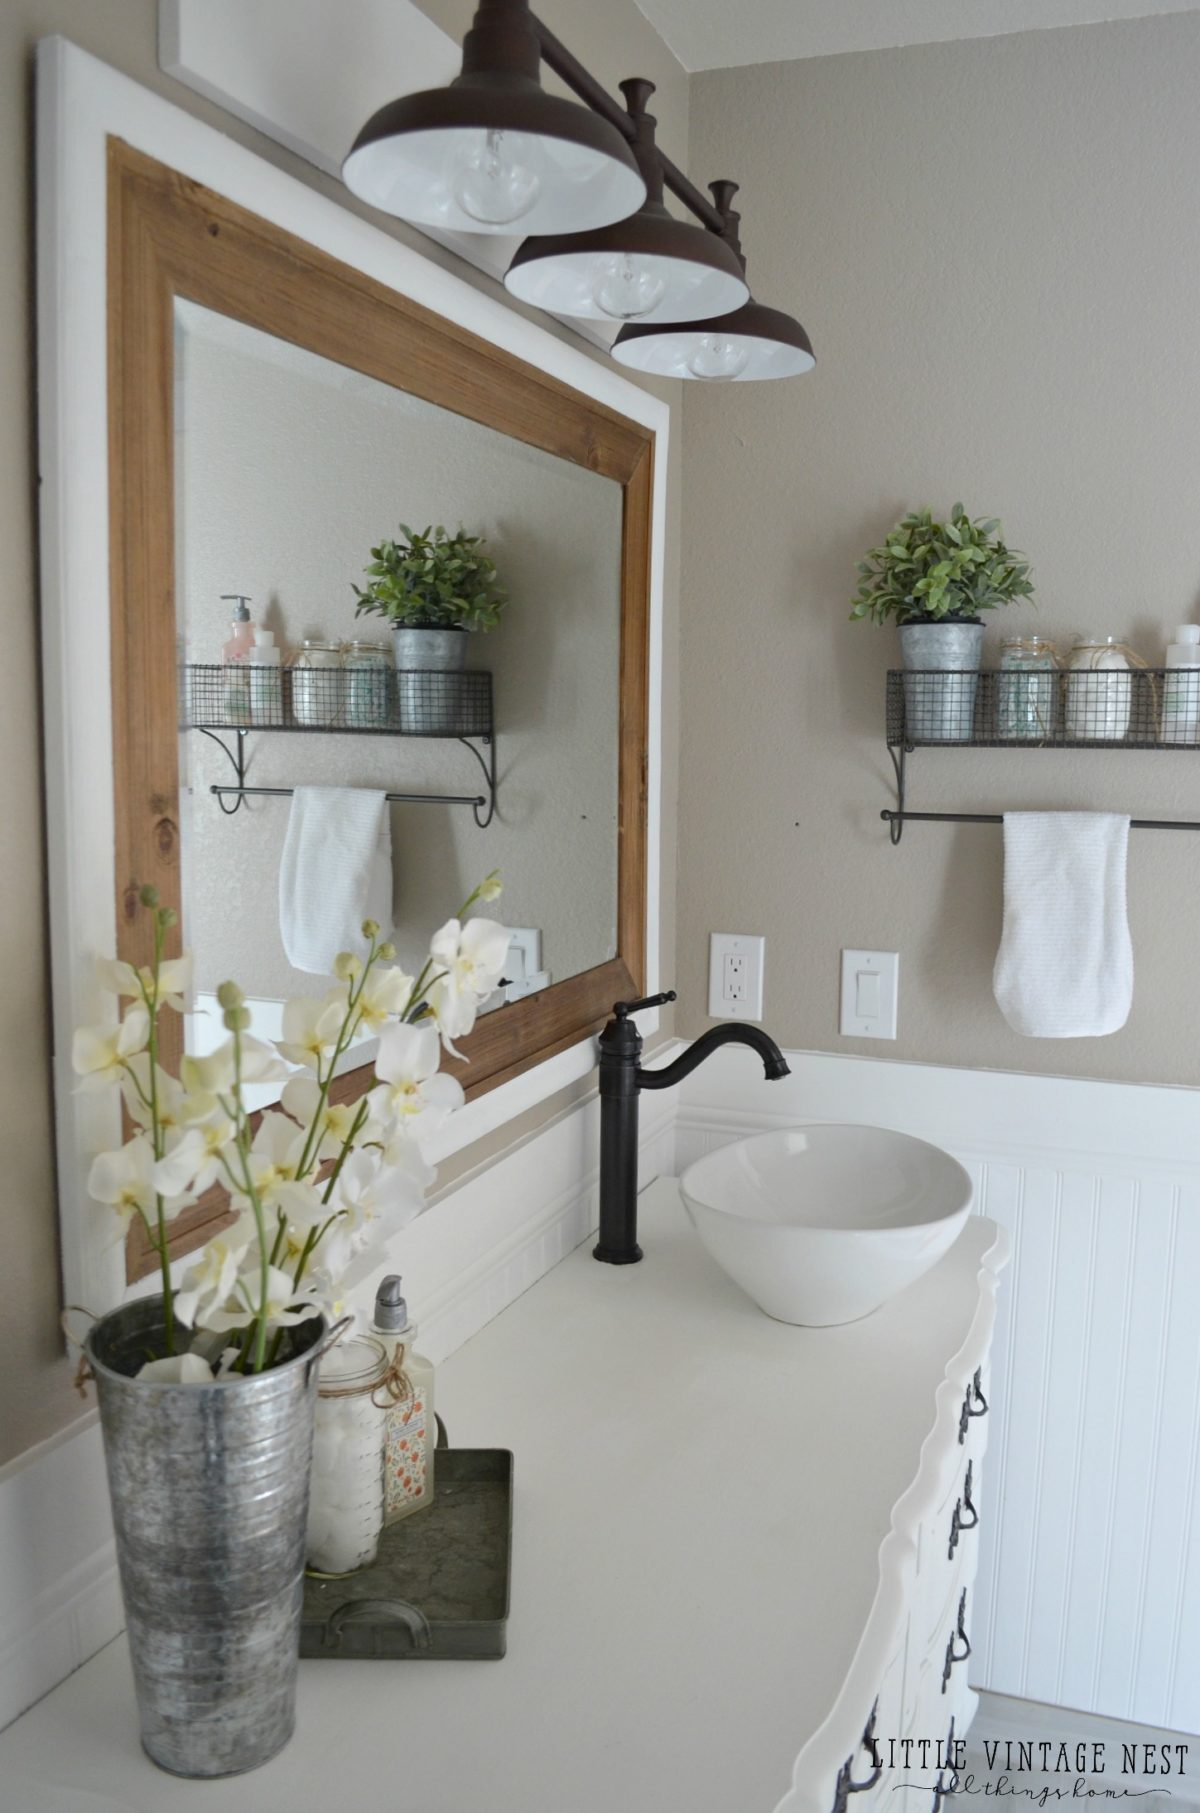 Vanity Lights Farmhouse : Farmhouse Master Bathroom Reveal - Little Vintage Nest